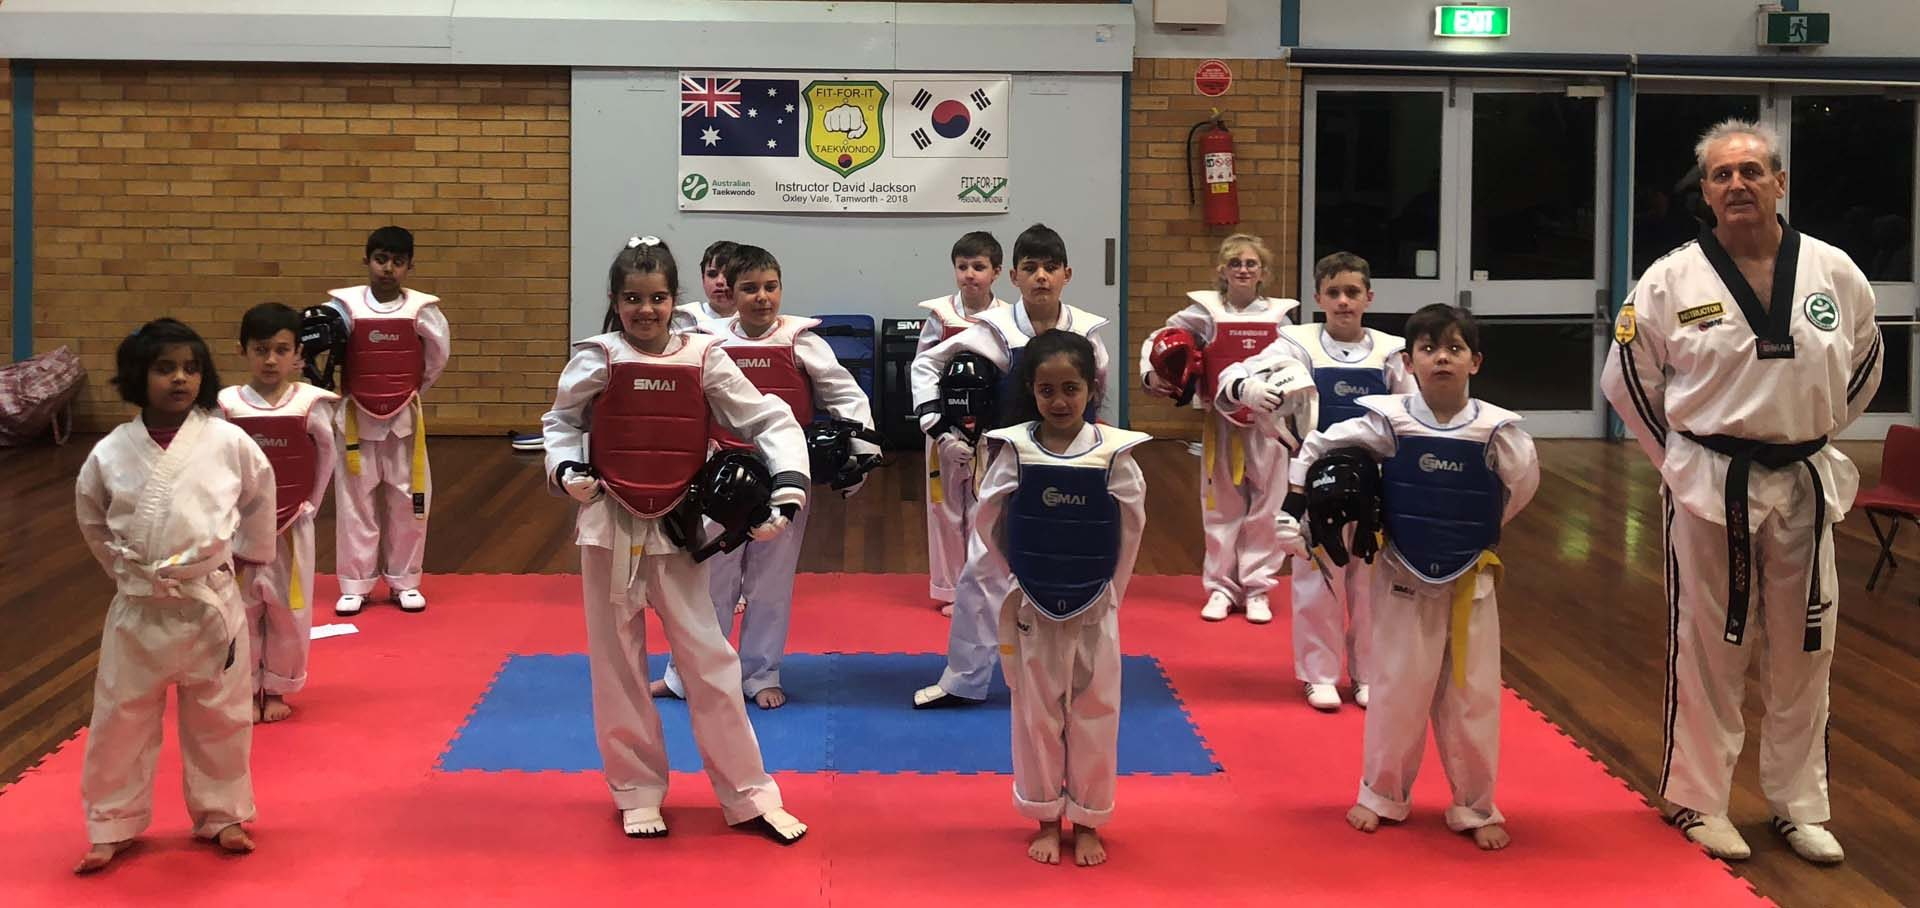 A taekwondo tournament in Tamworth with a group of students facing camera ready to practice martial arts.